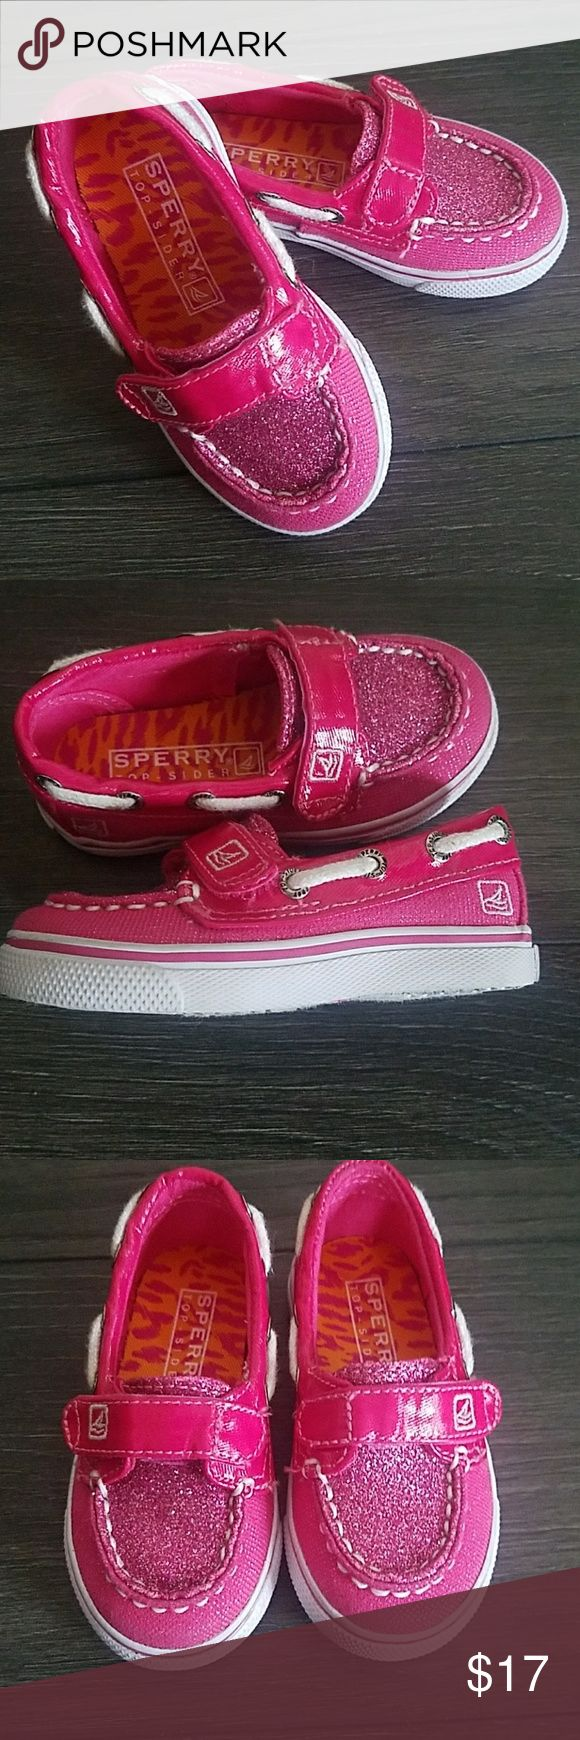 Infant Pink Sperry Shoes Like new infant pink Sperry shoes. Has pink glitter on top. Only worn once. Size 5 Sperry Top-Sider Shoes Baby & Walker